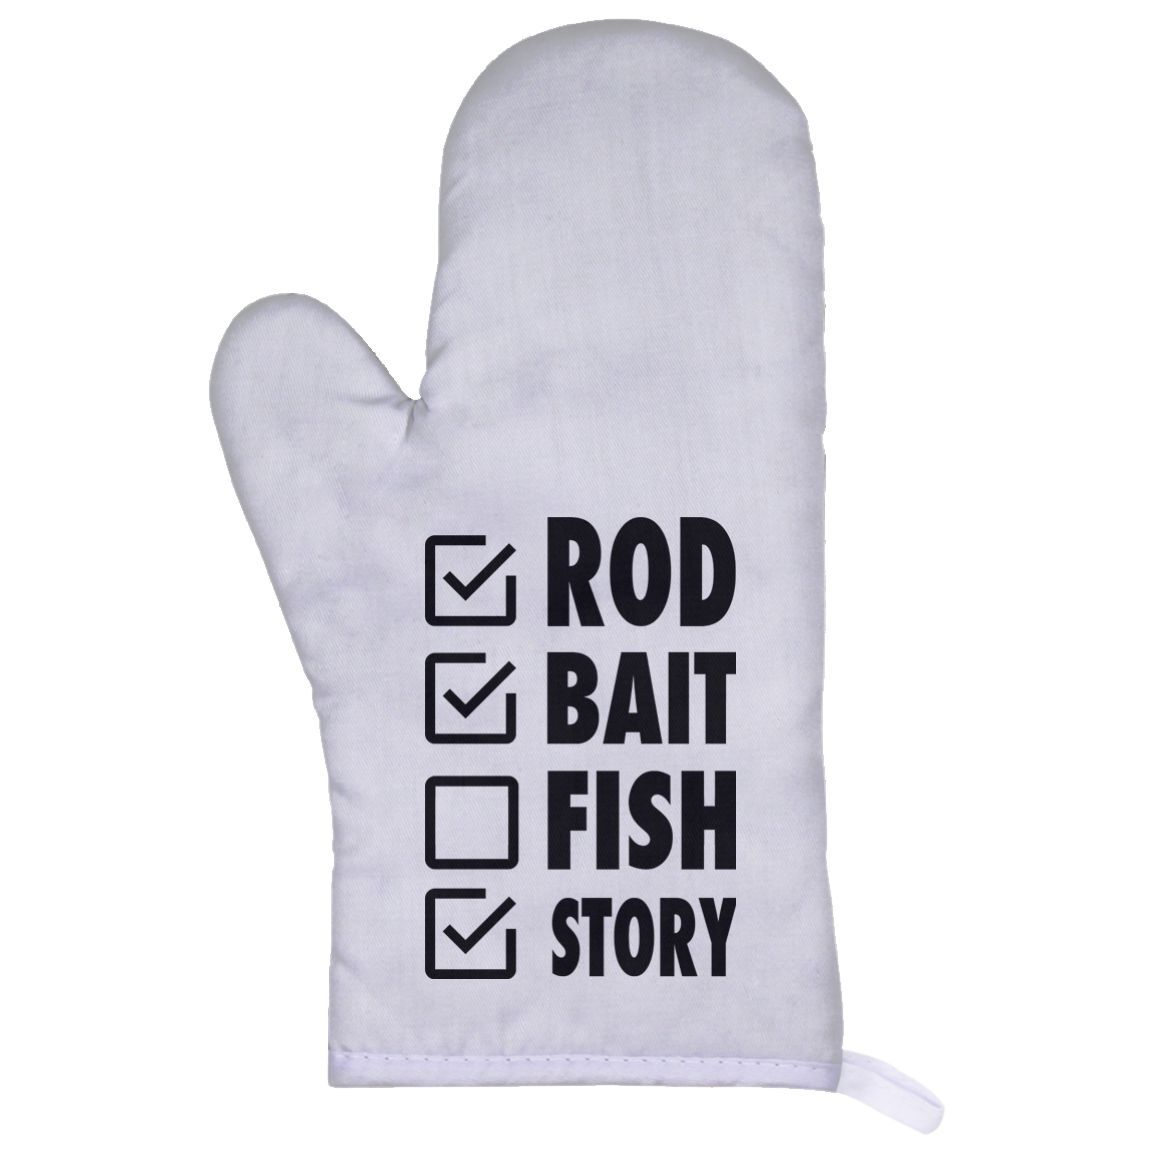 Rod Bait Fish Story Oven Mitts